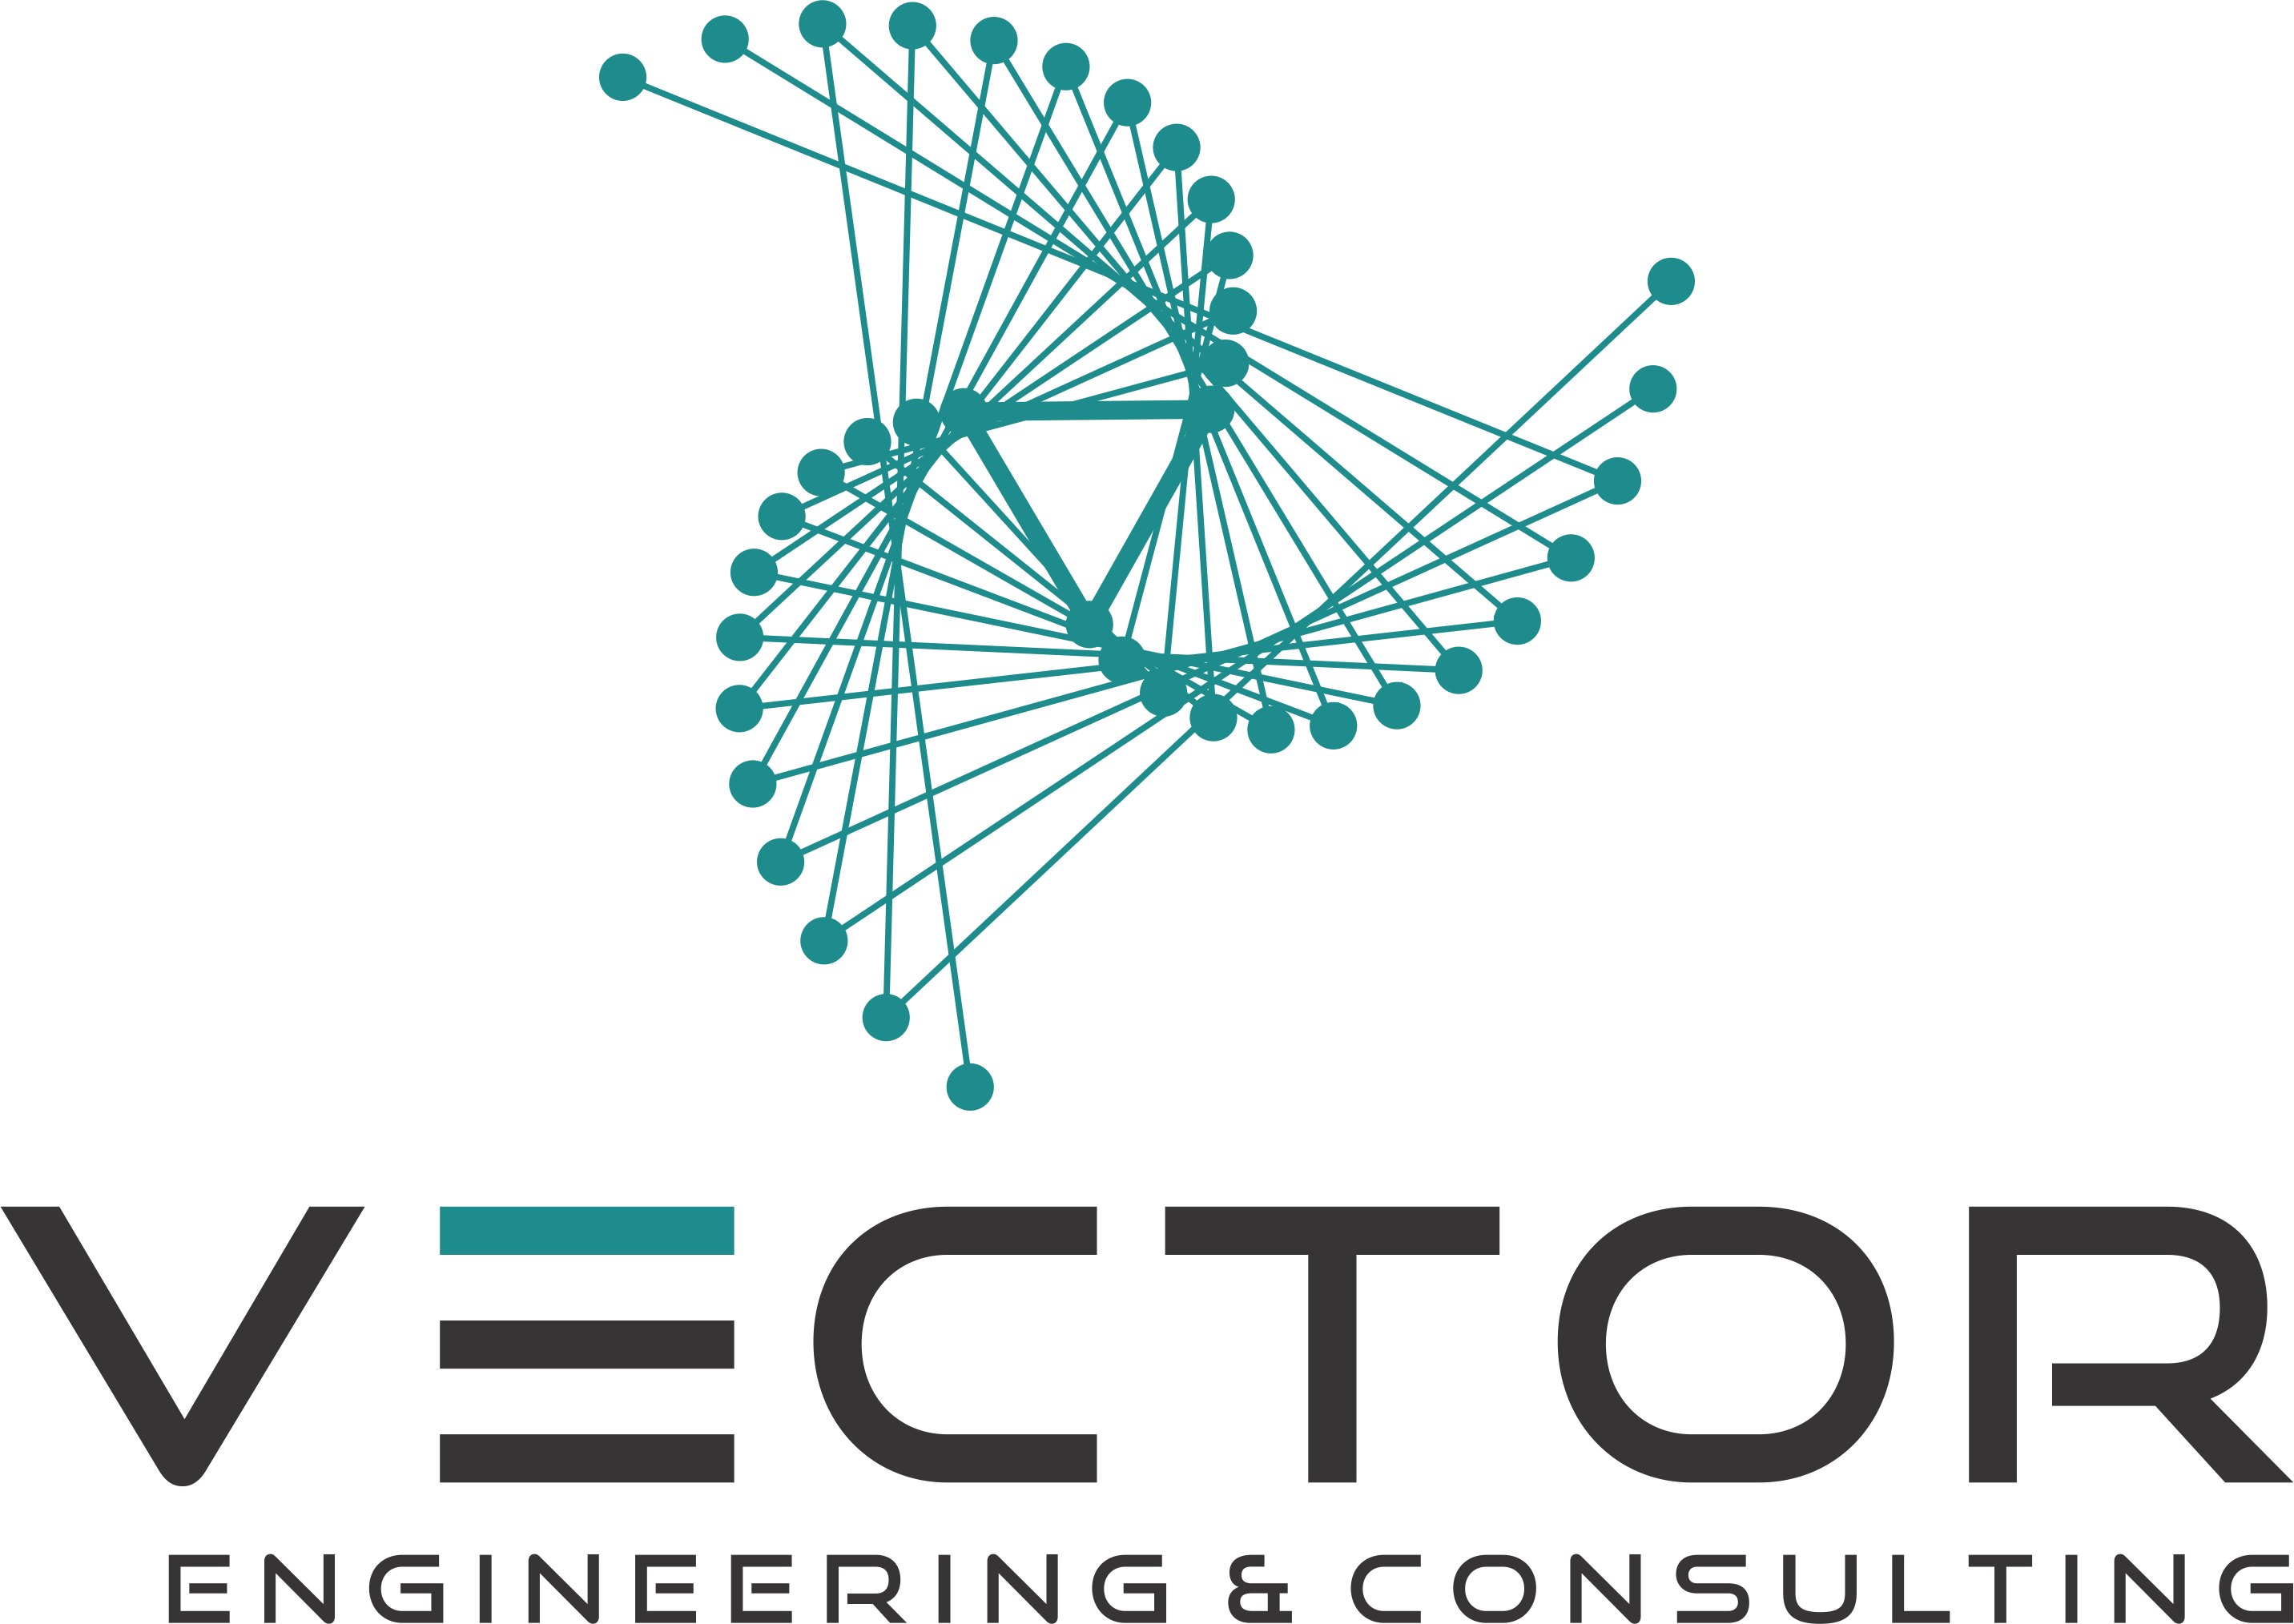 Vector Engineering & Consulting